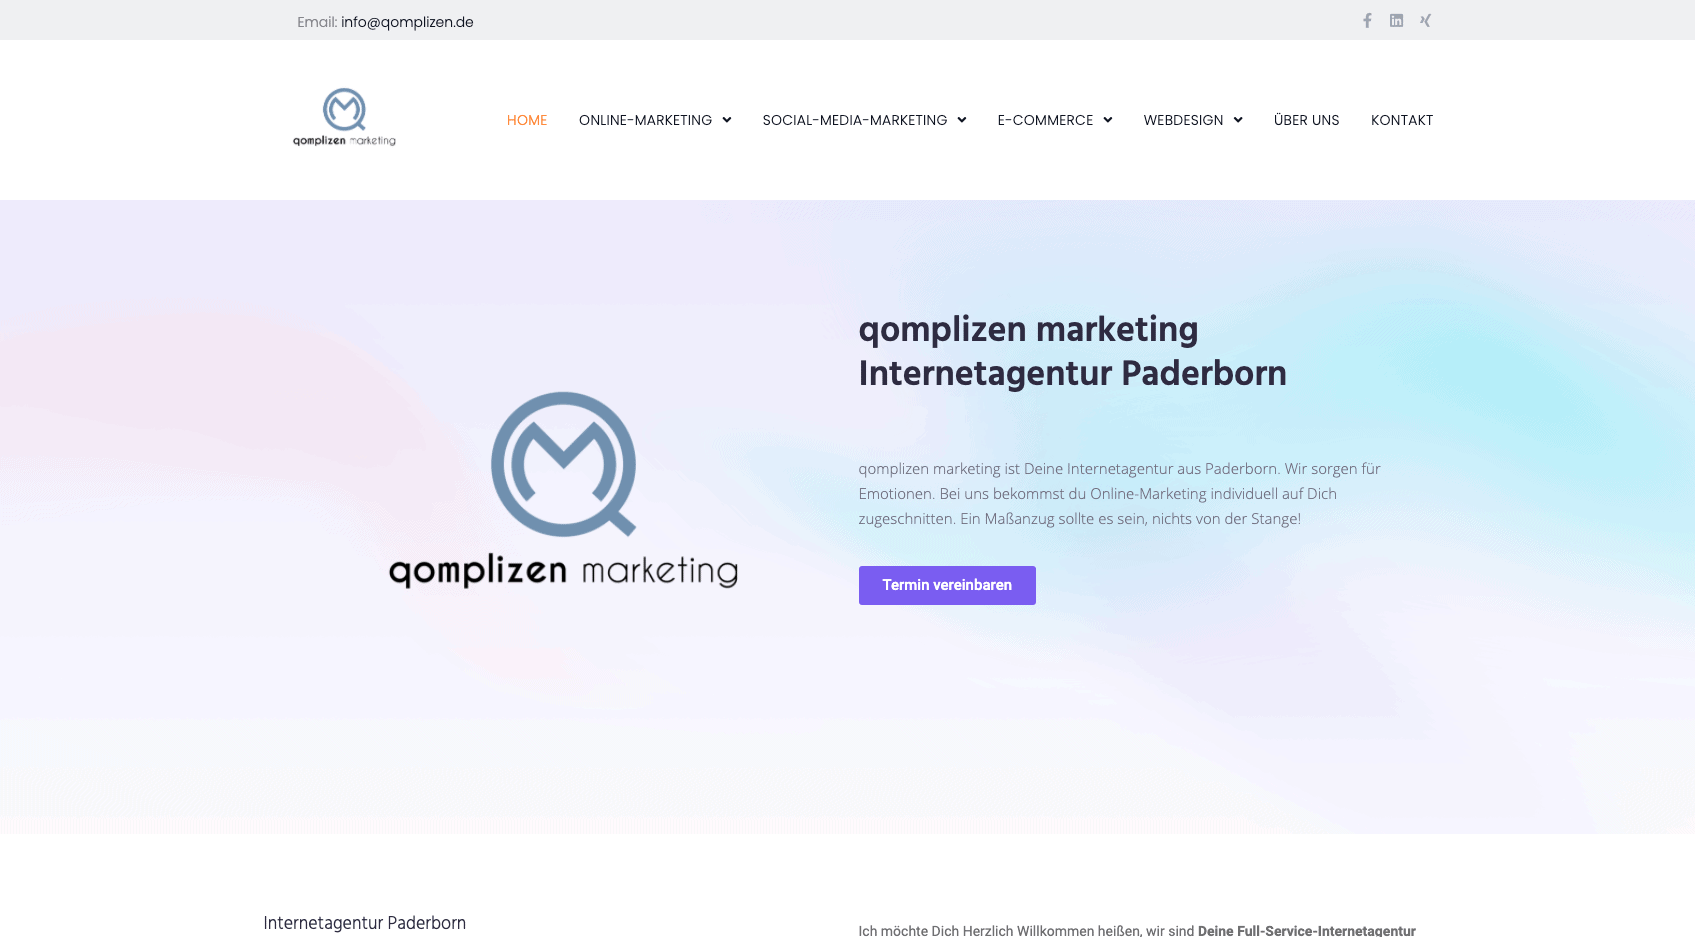 Internetagentur qomplizen marketing neu